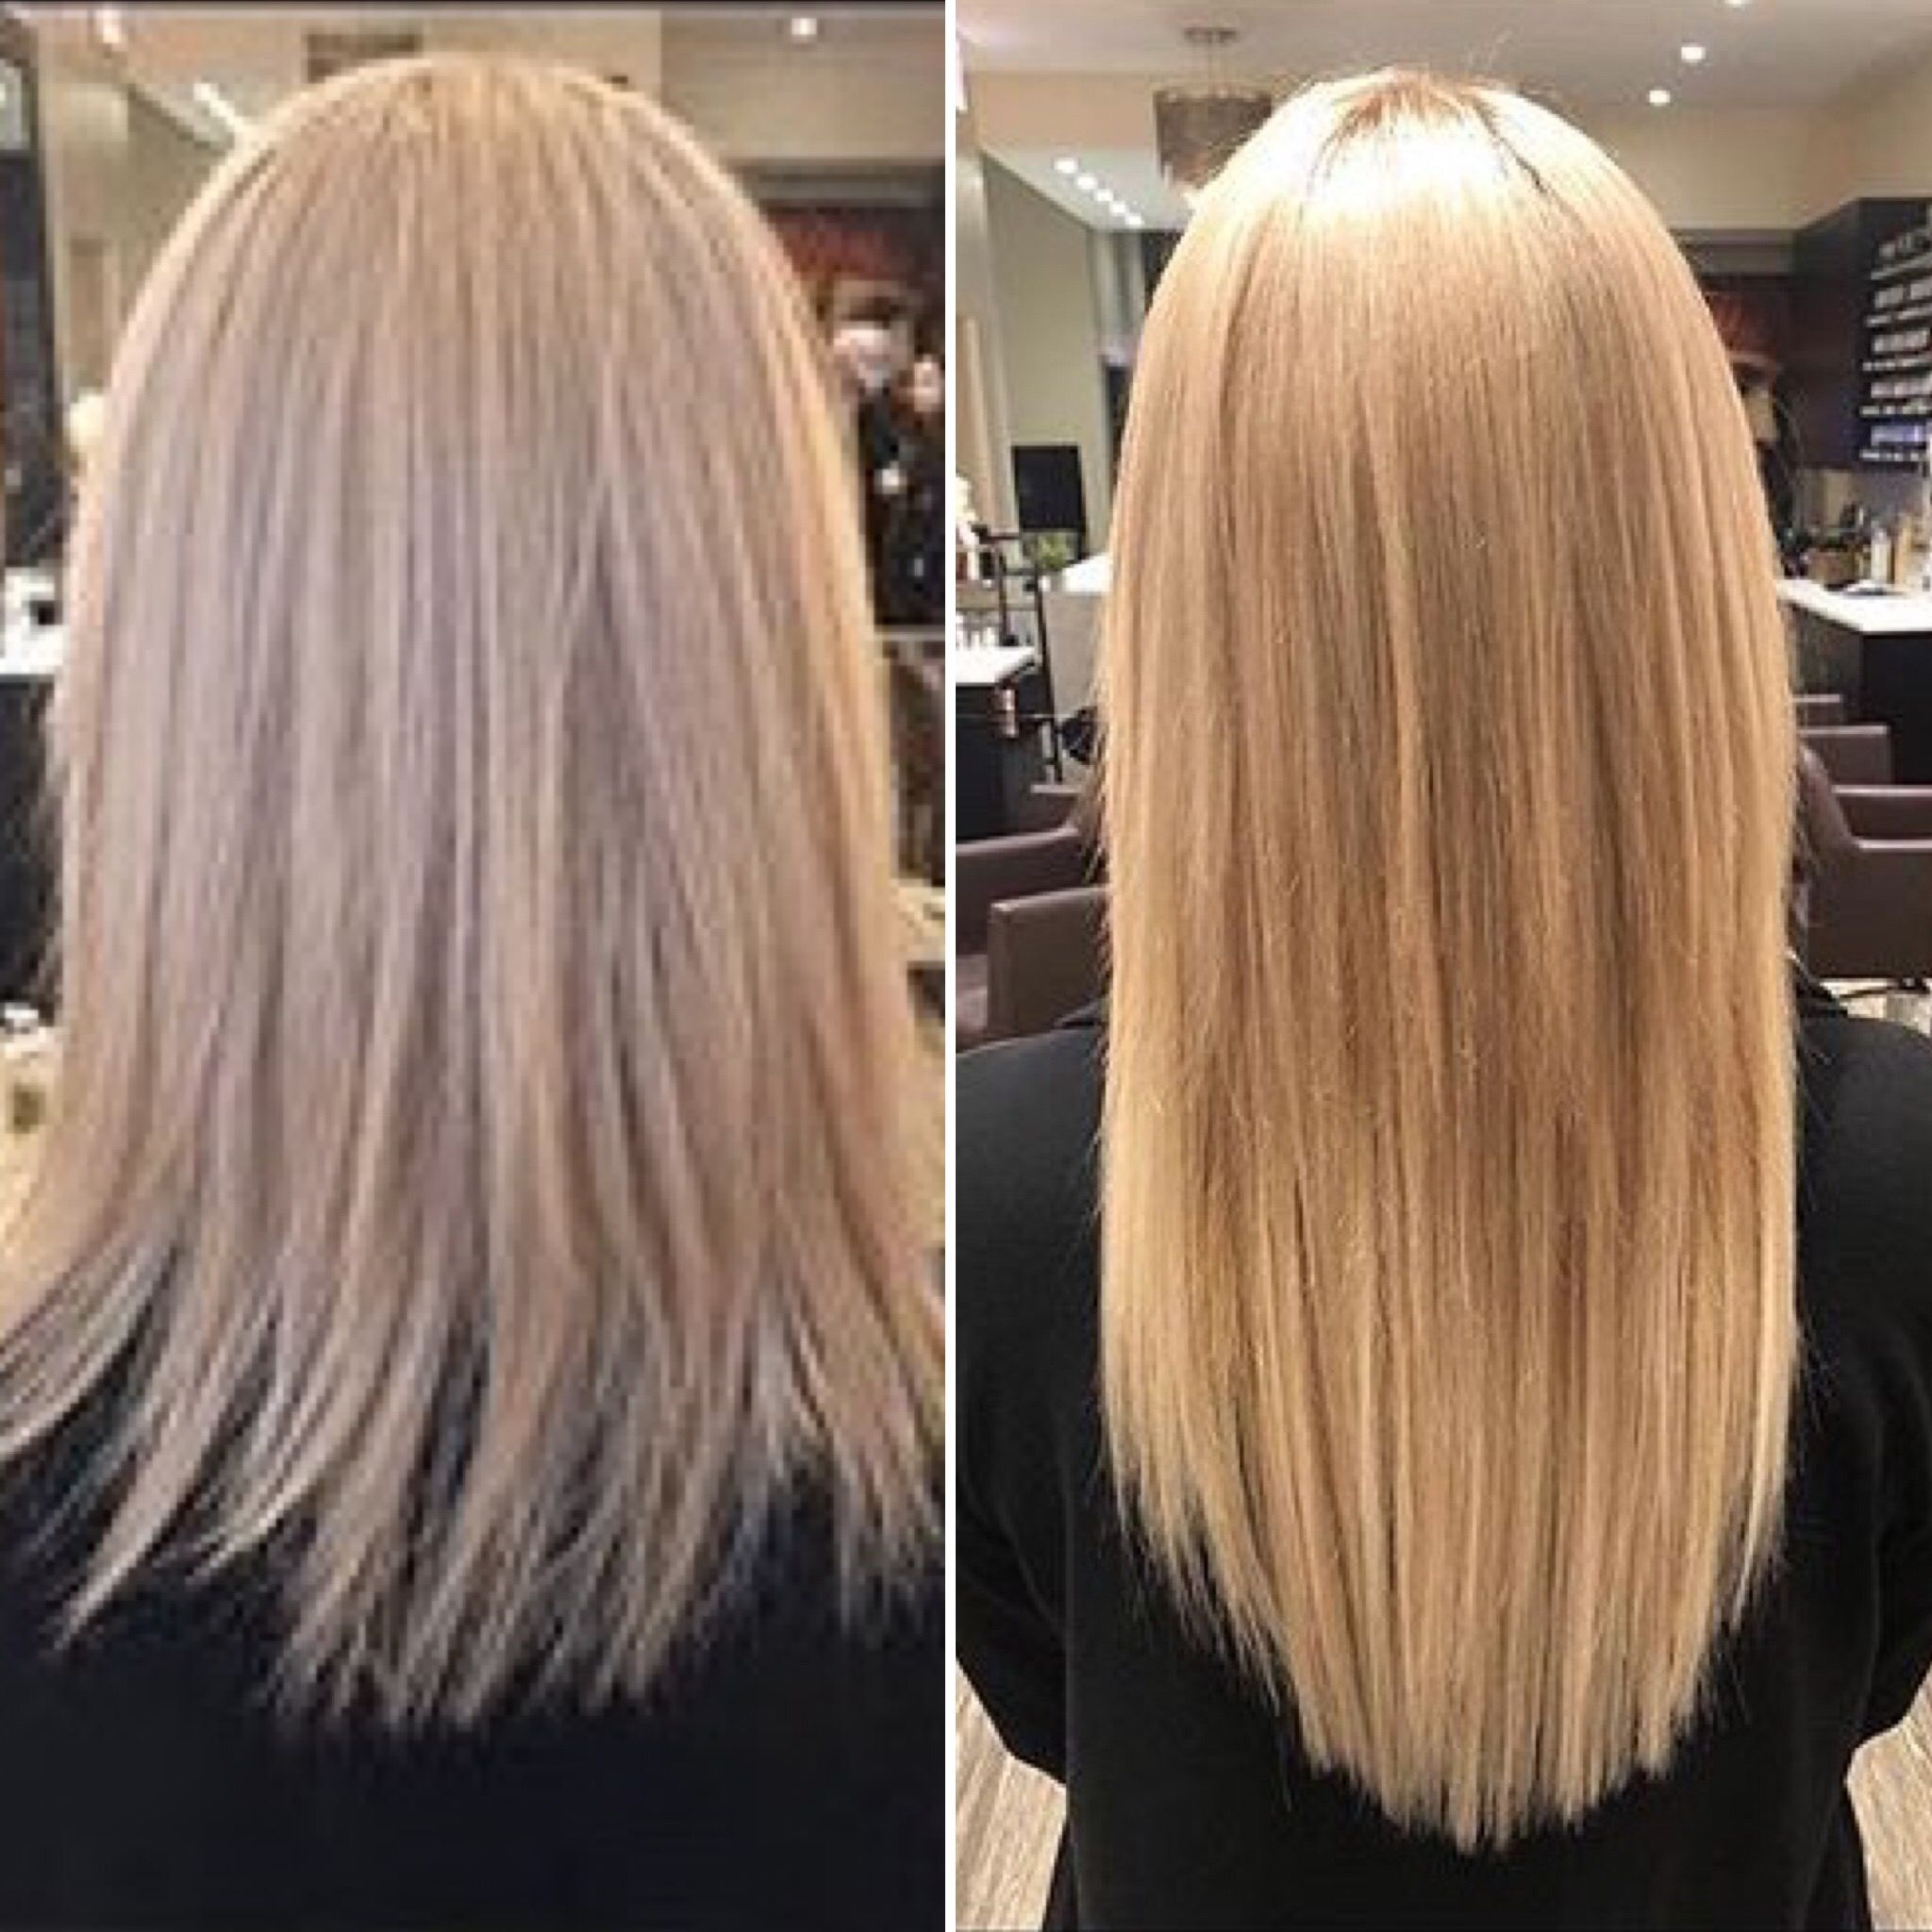 A Transformationtuesday Using Tonyodisho Hairextensions